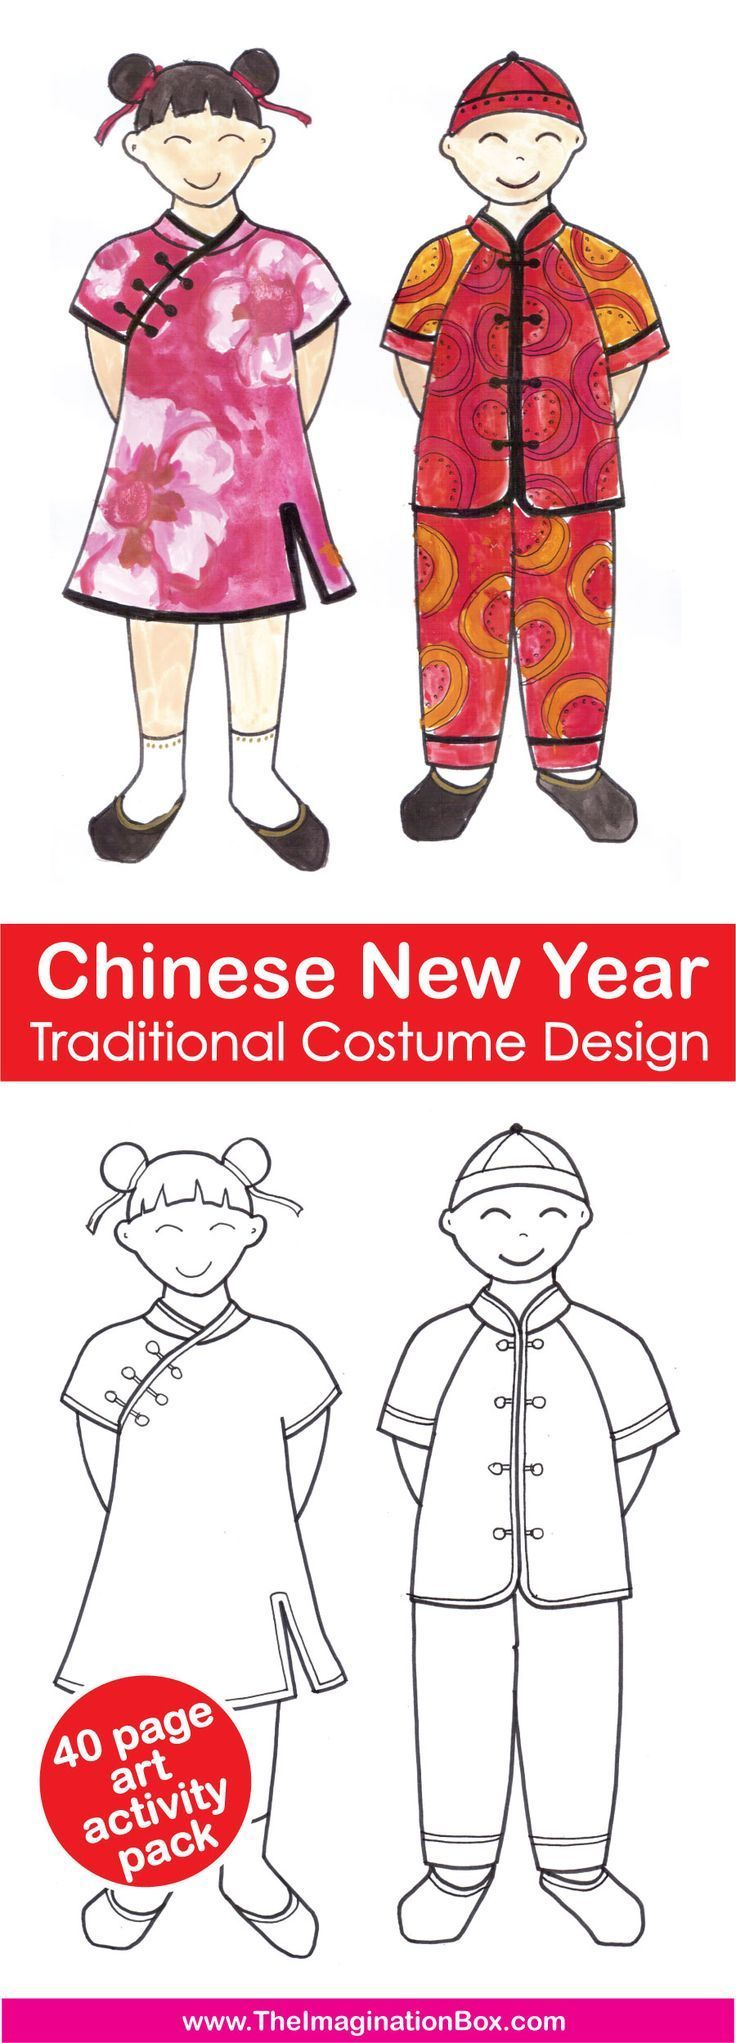 Chinese New Year 2021 Coloring Pages And Art Activities Chinese New Year Crafts For Kids Art Activities Chinese New Year Crafts